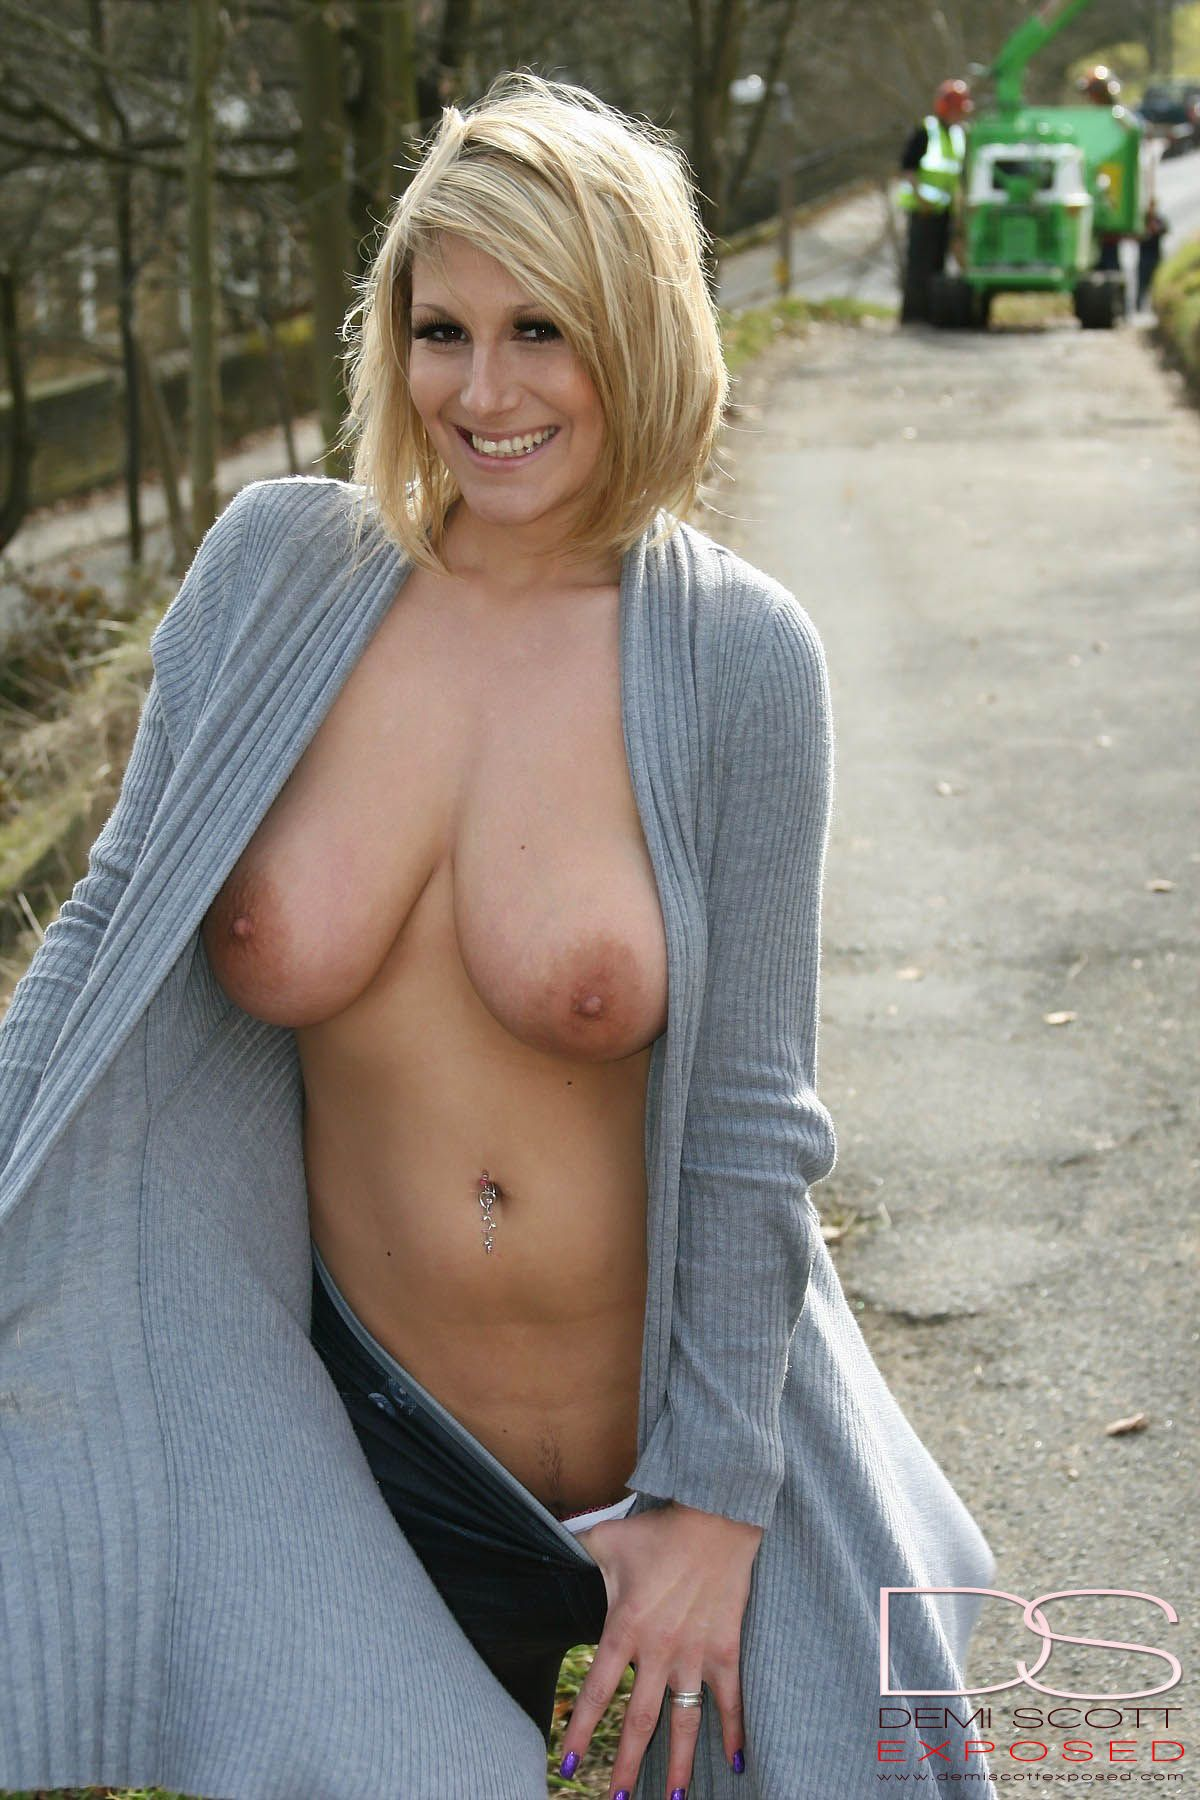 Big Tits Flashing - ... Demi Scott Flashing Outdoors